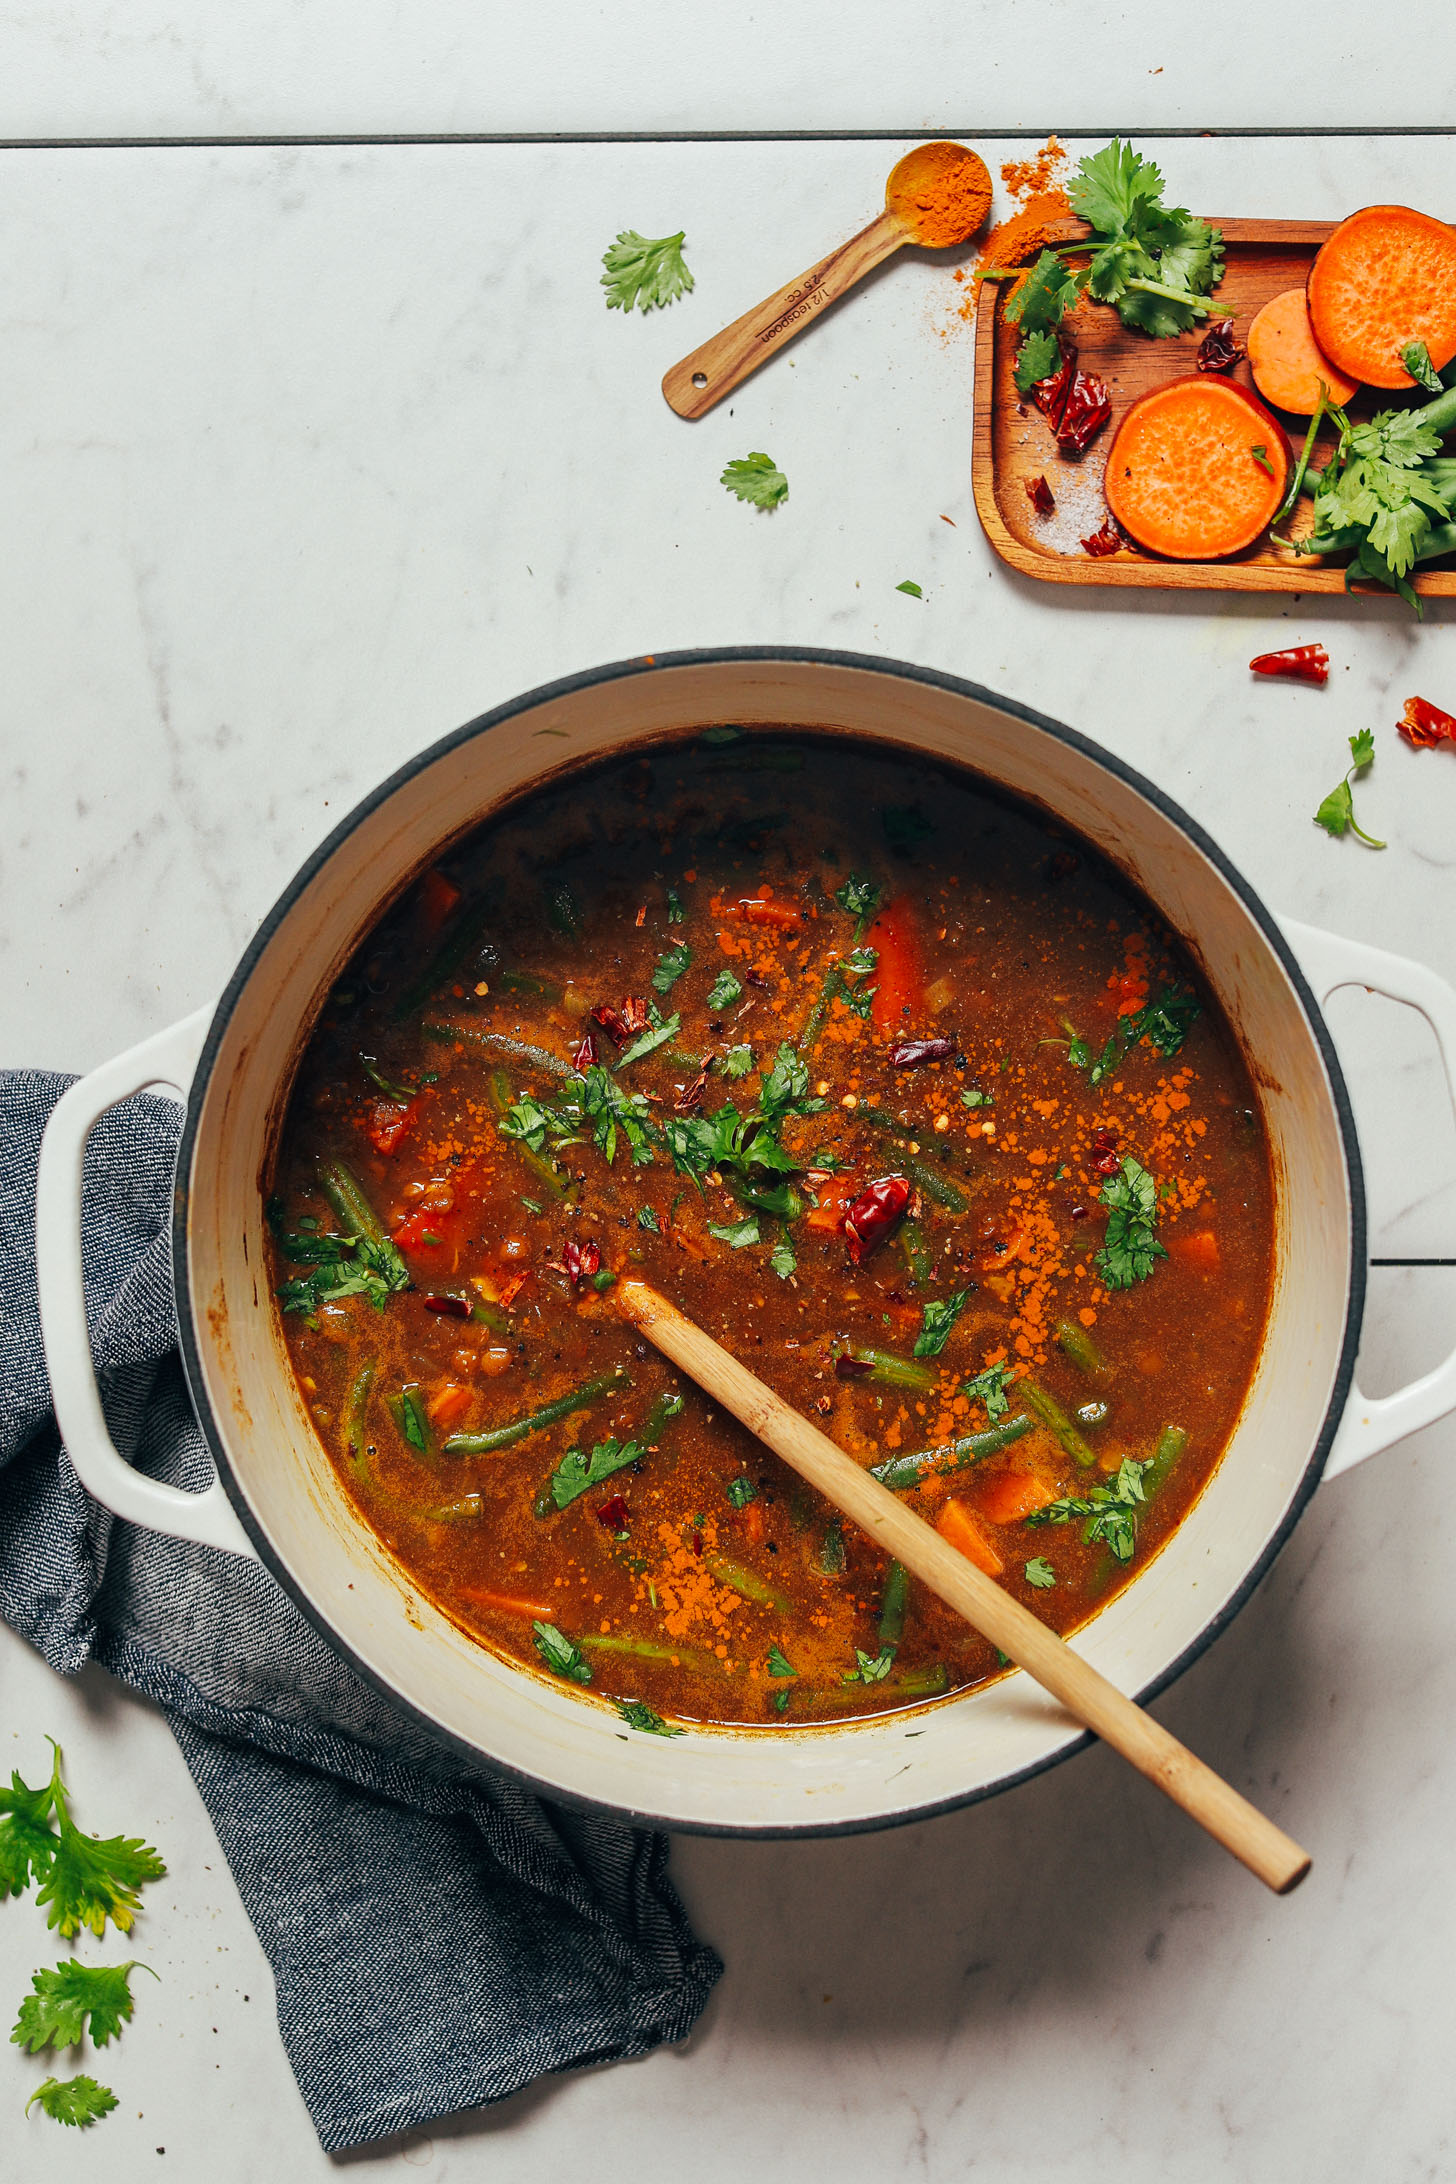 Freshly parsley sprinkled over a pot of our Spiced Sweet Potato Lentil Soup recipe